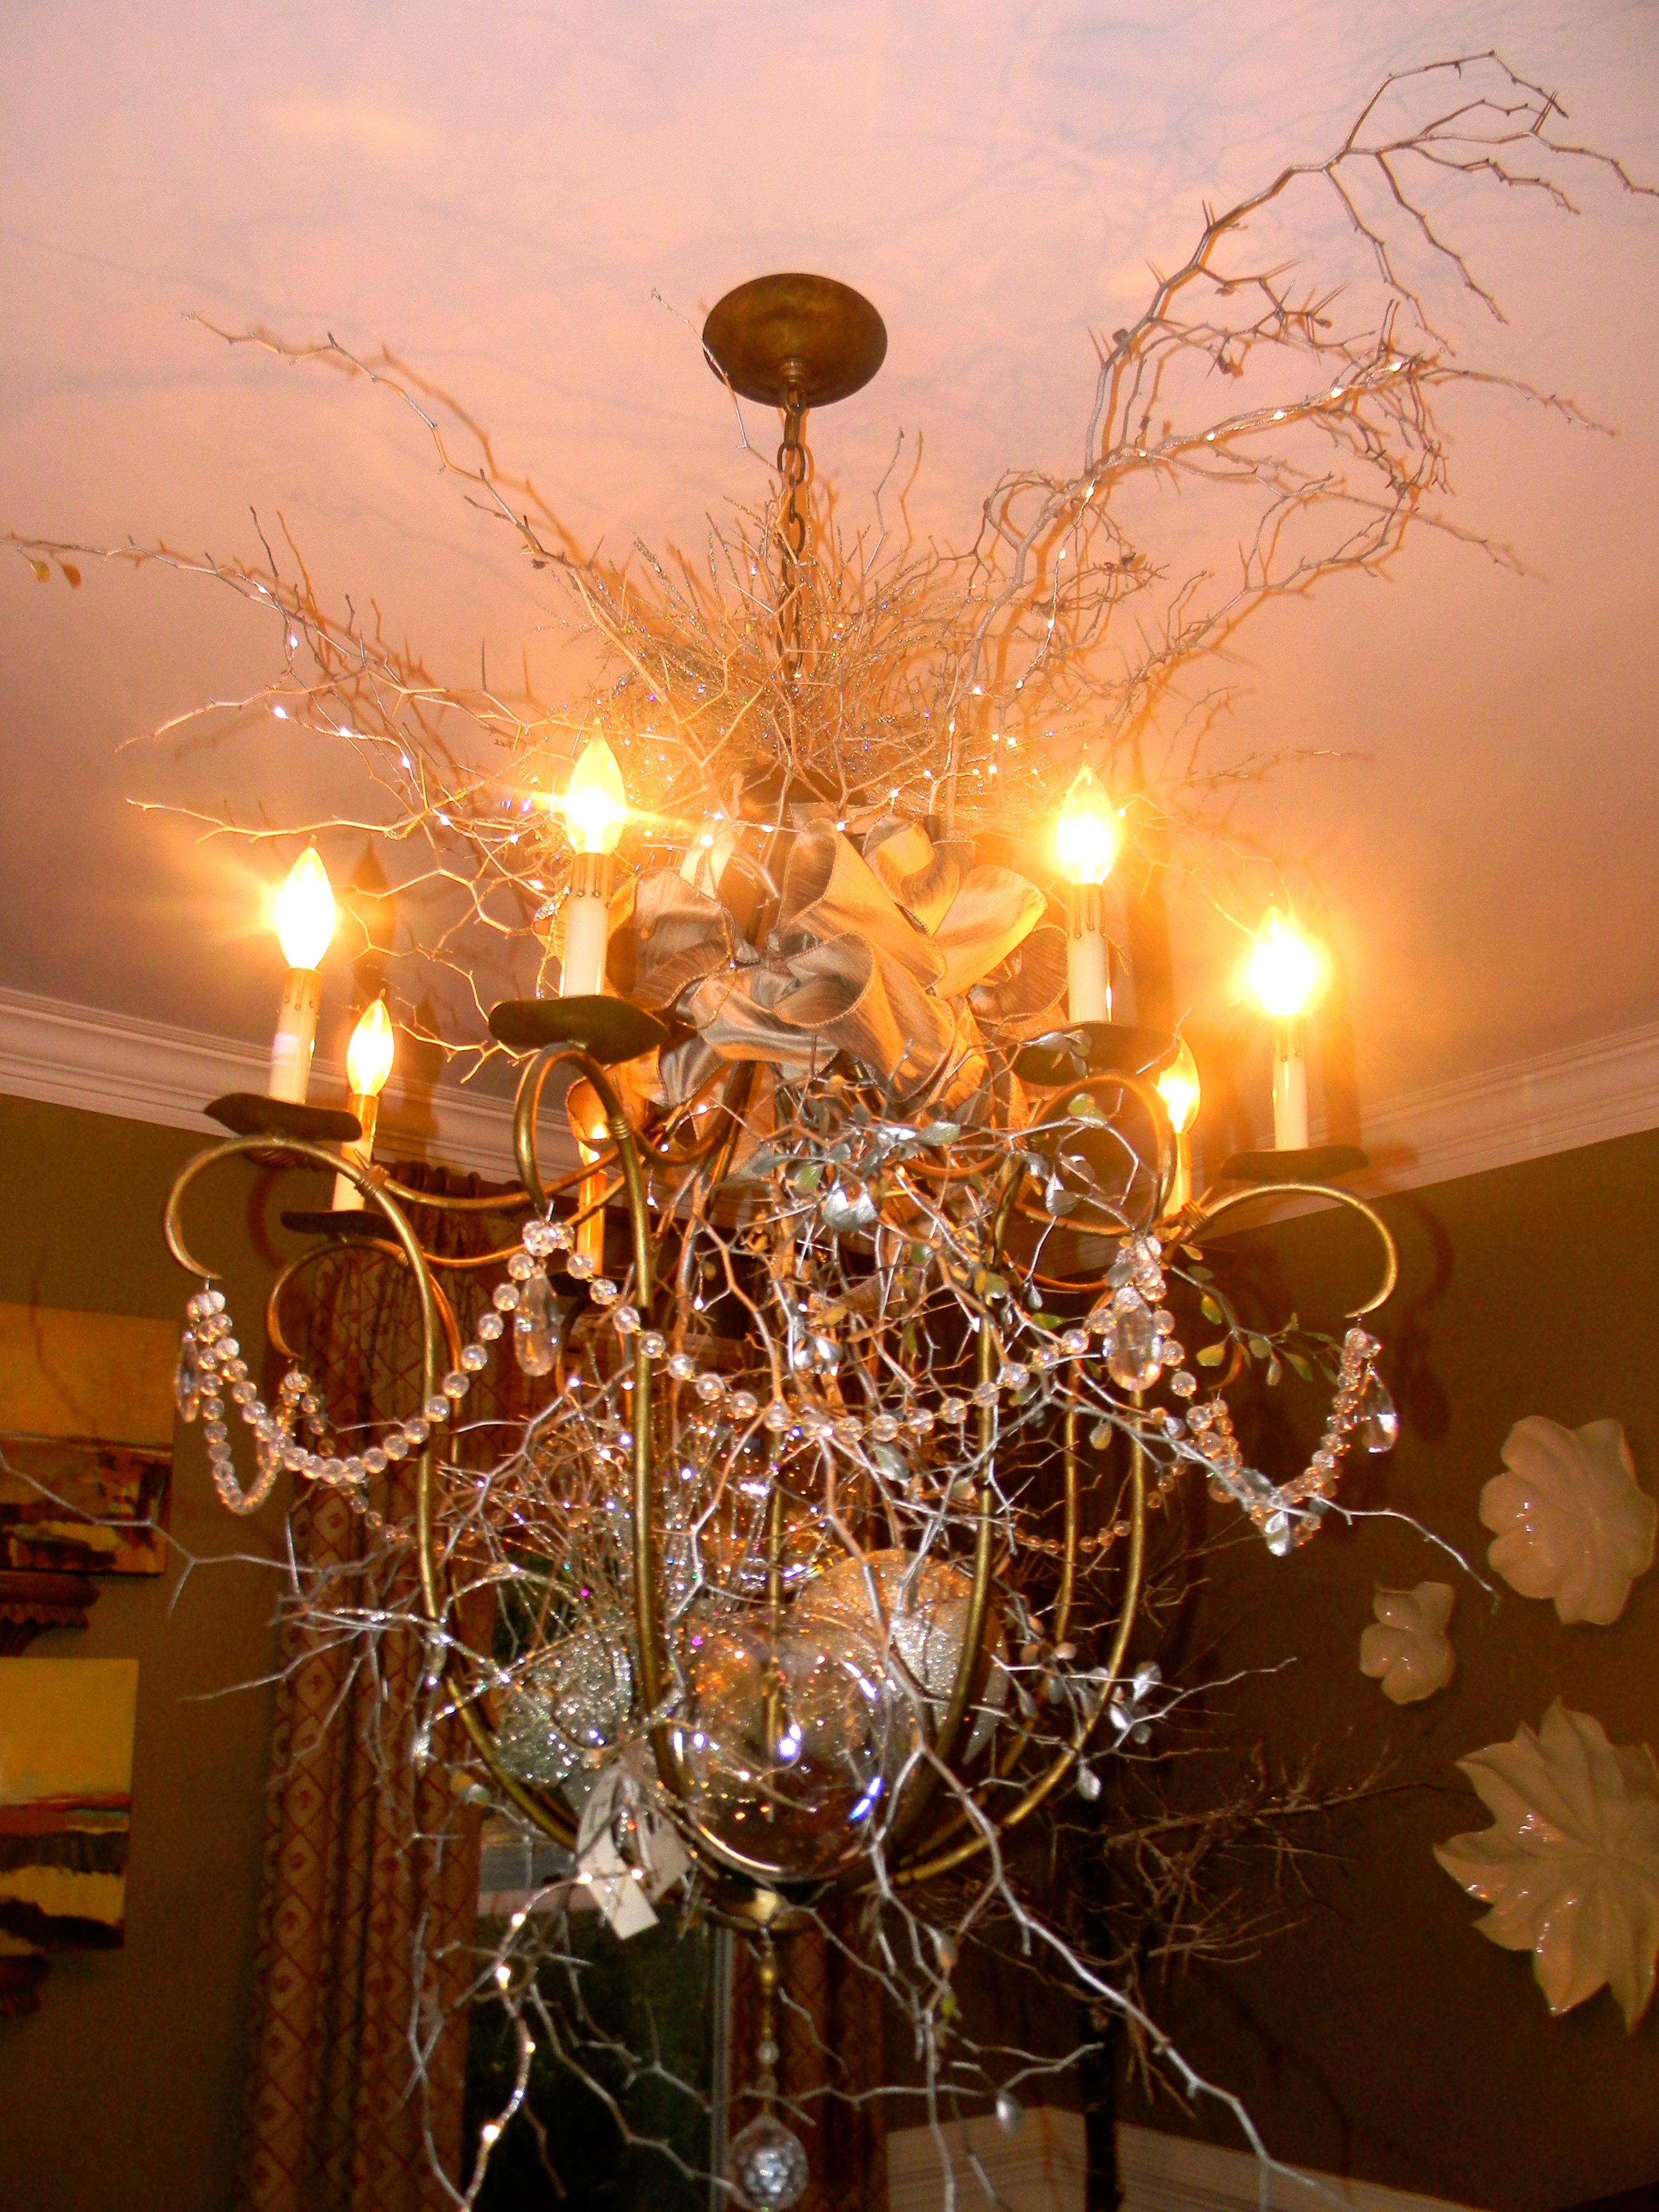 light fixture for the holidays!